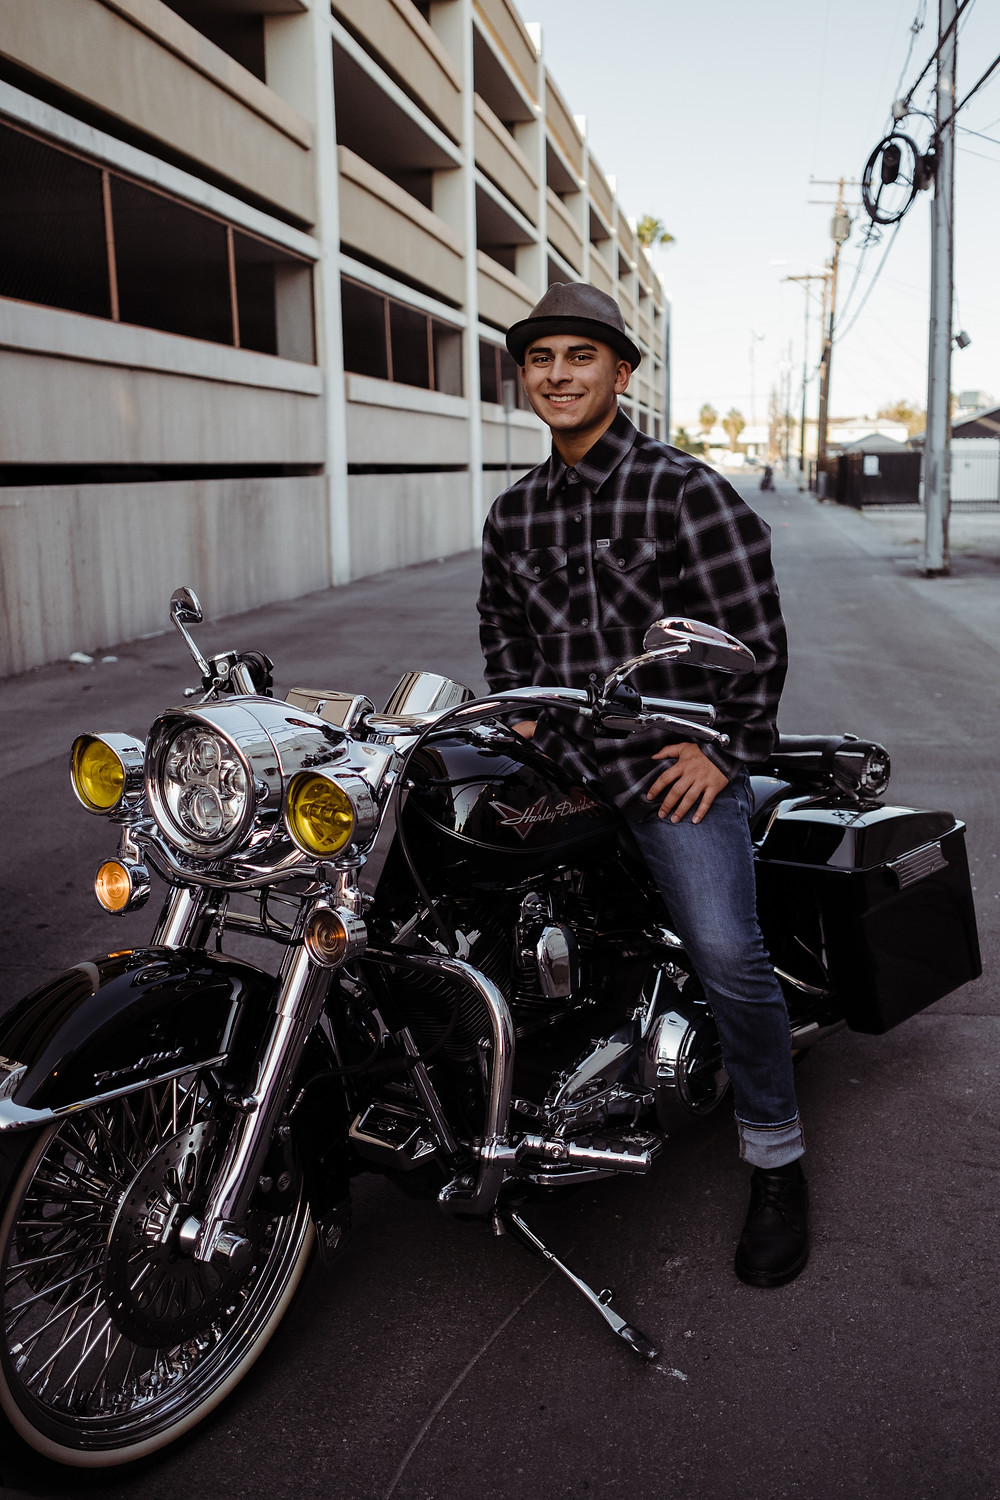 High school senior poses on harley motorcycle for vintage downtown senior portraits in las vegas